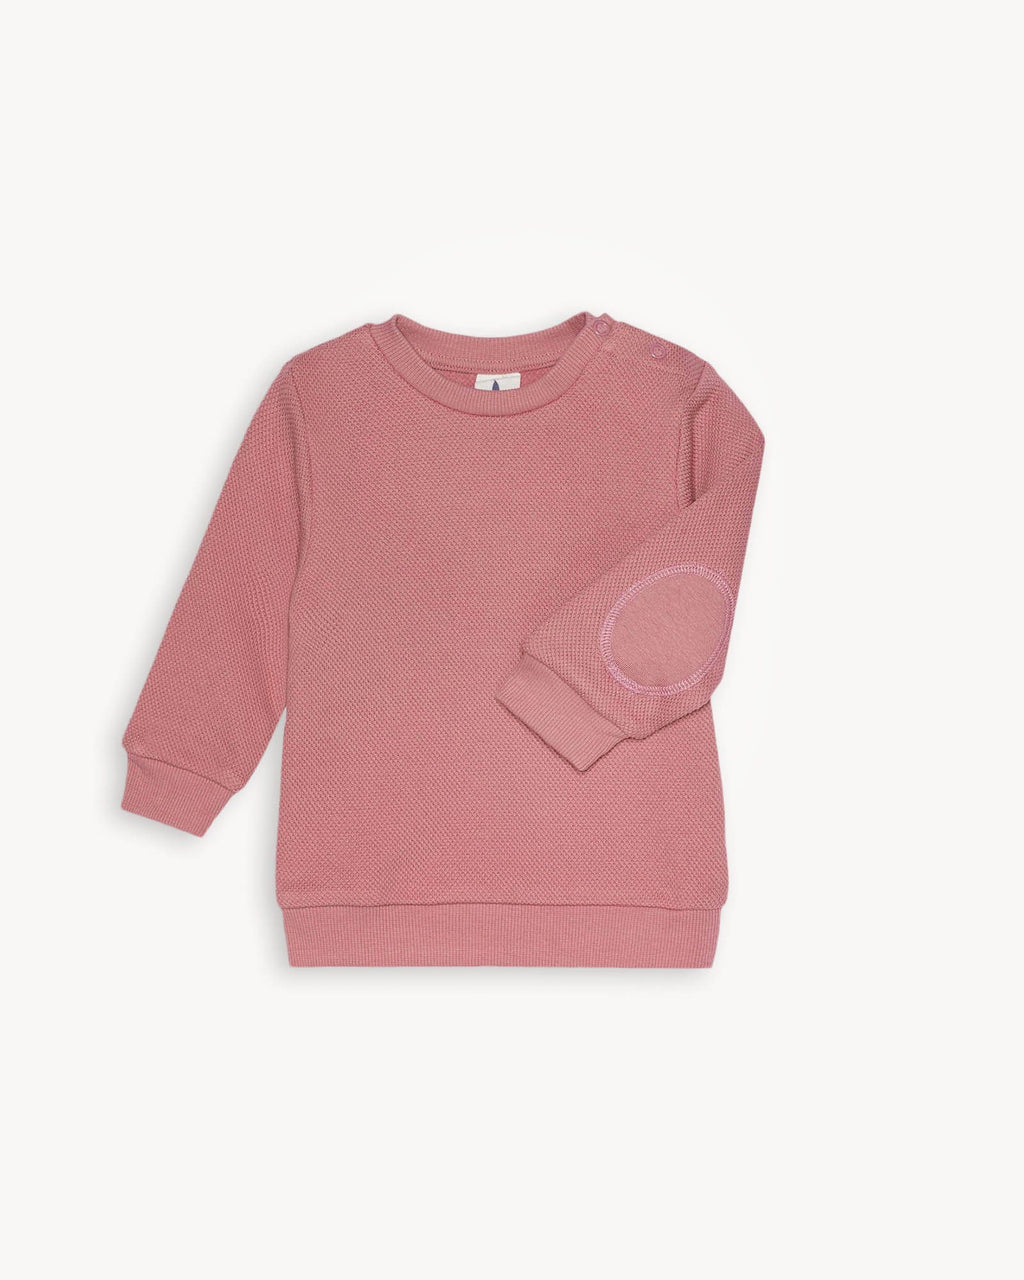 variant_1 | EN Dusty Pink Sweatshirt for Kids and Baby Pique | DE Rosa Pink Pique Sweatshirt for Baby und Kinder